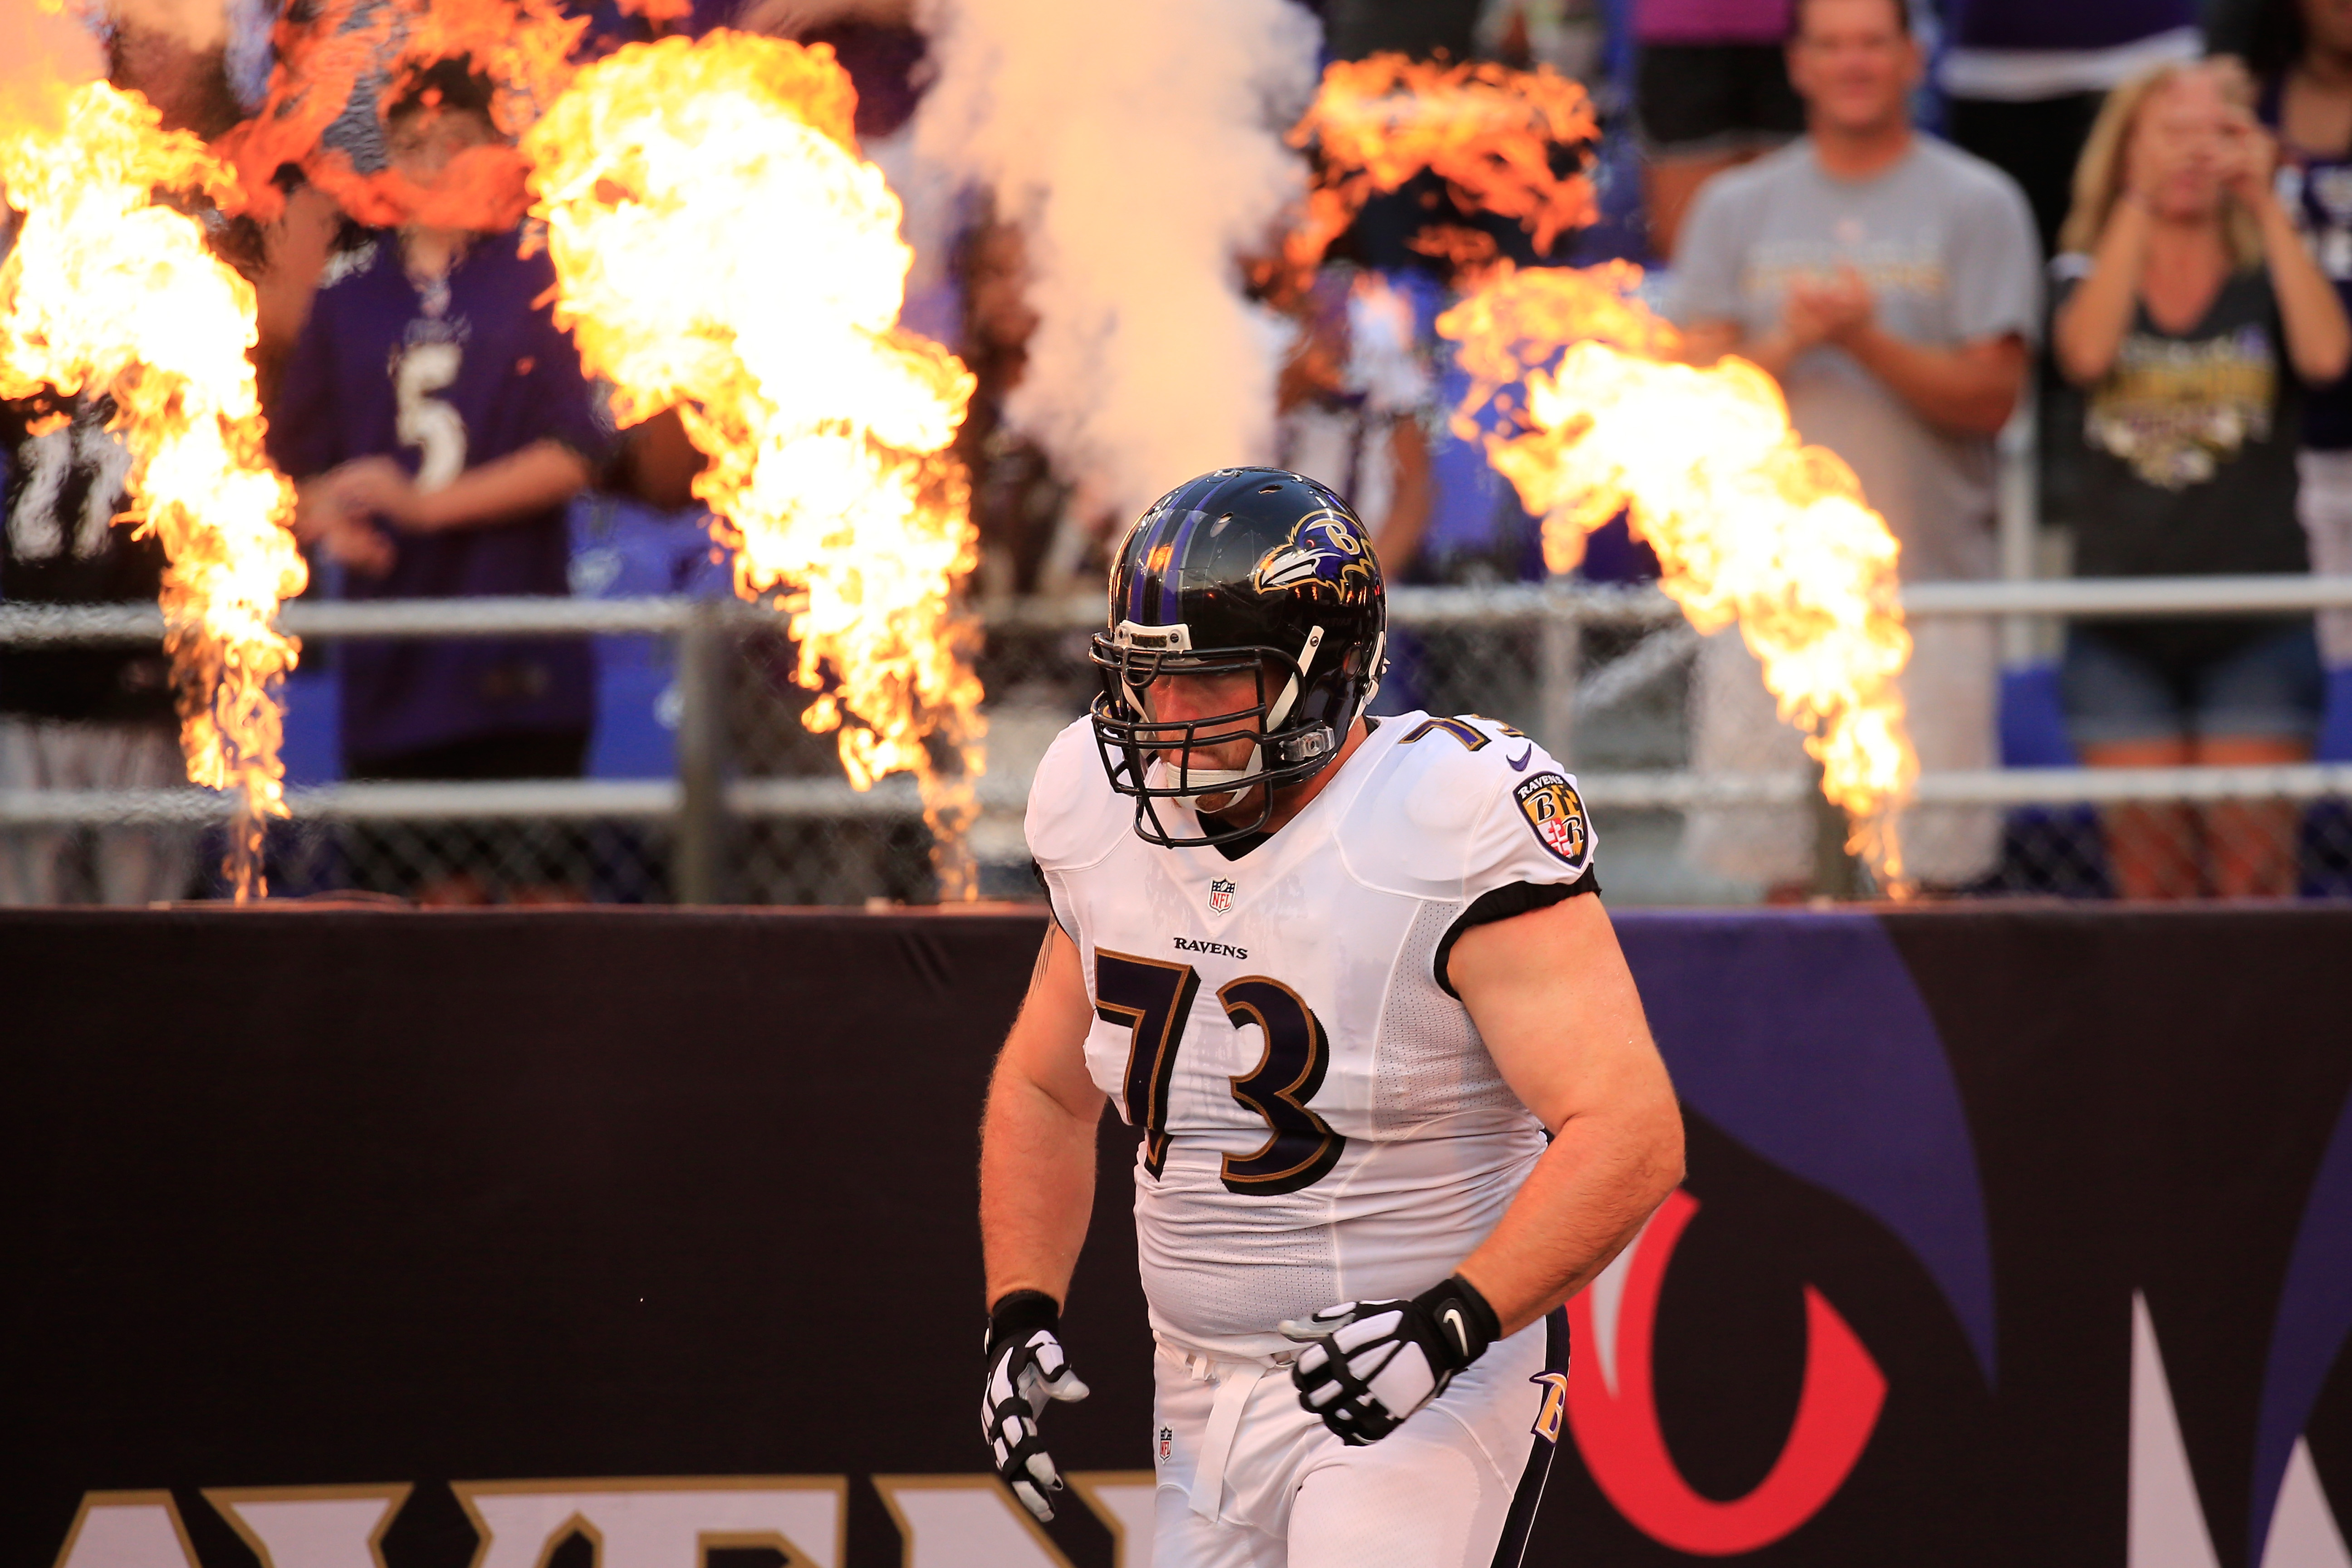 Marshal Yanda injured Ravens need to make a move for offensive line